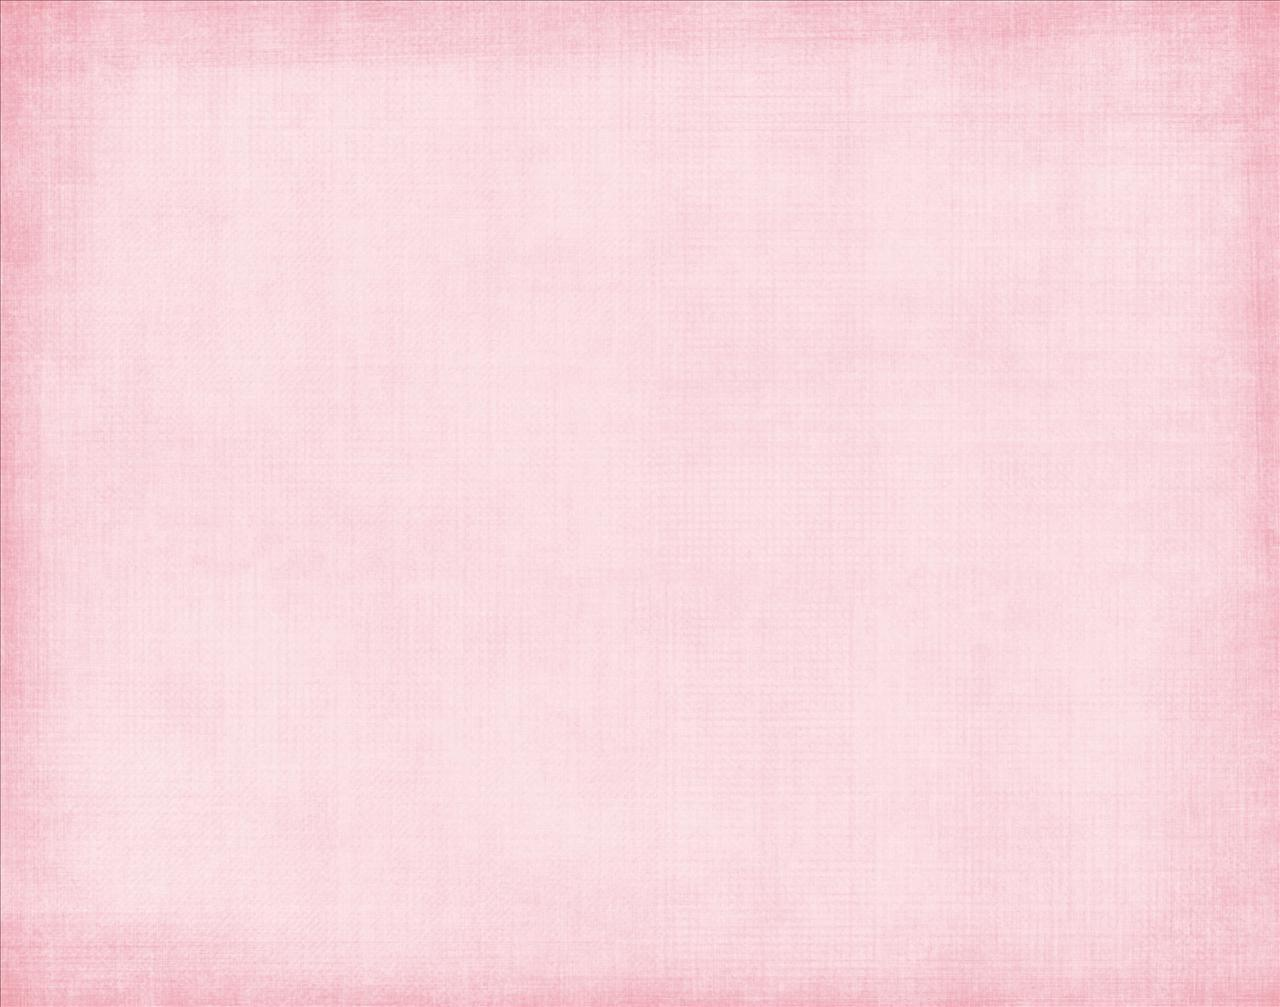 Pink Mommy Backgrounds